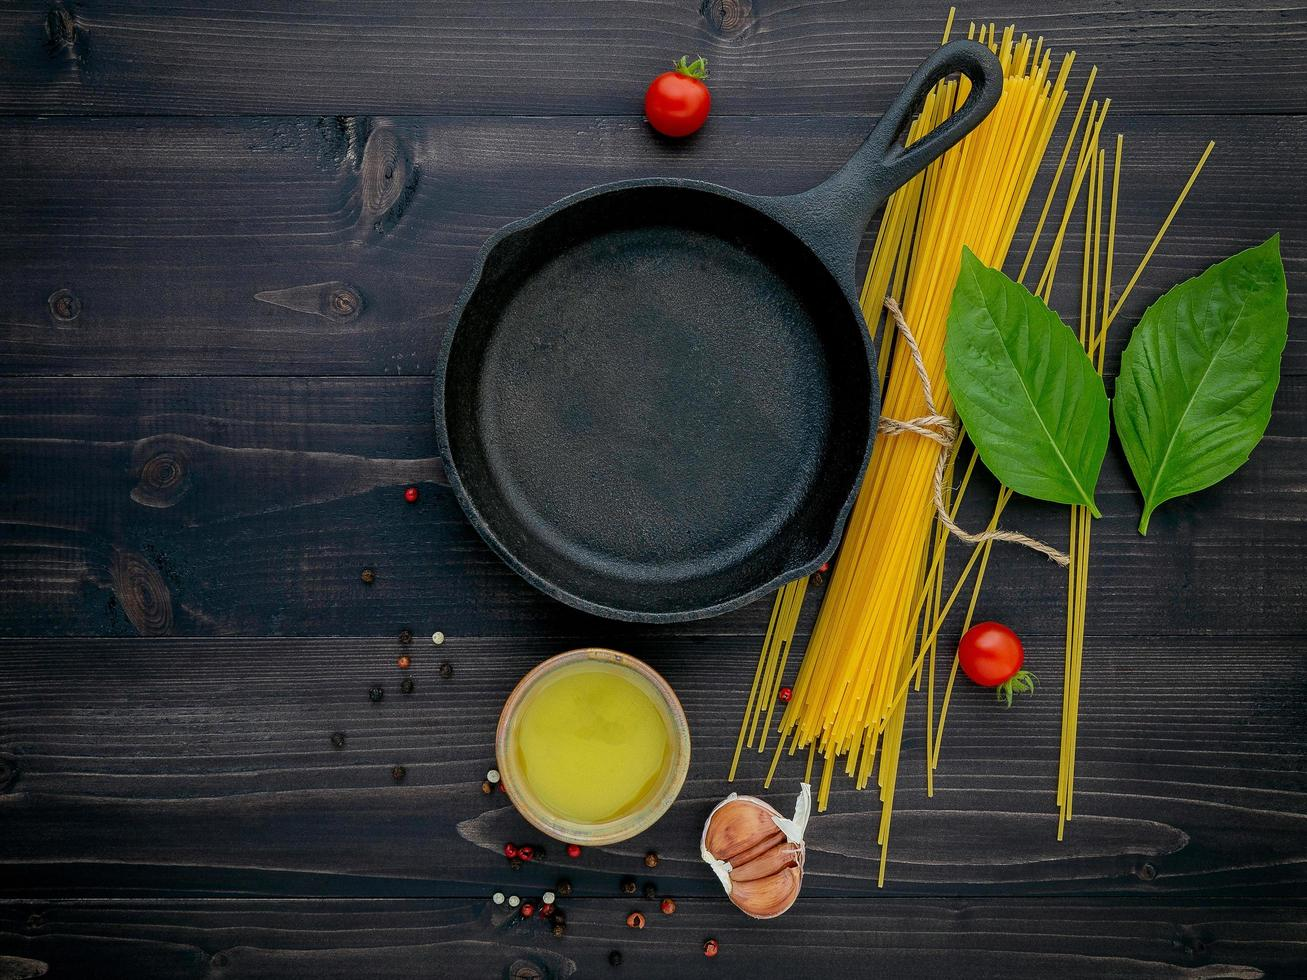 Skillet and spaghetti ingredients photo